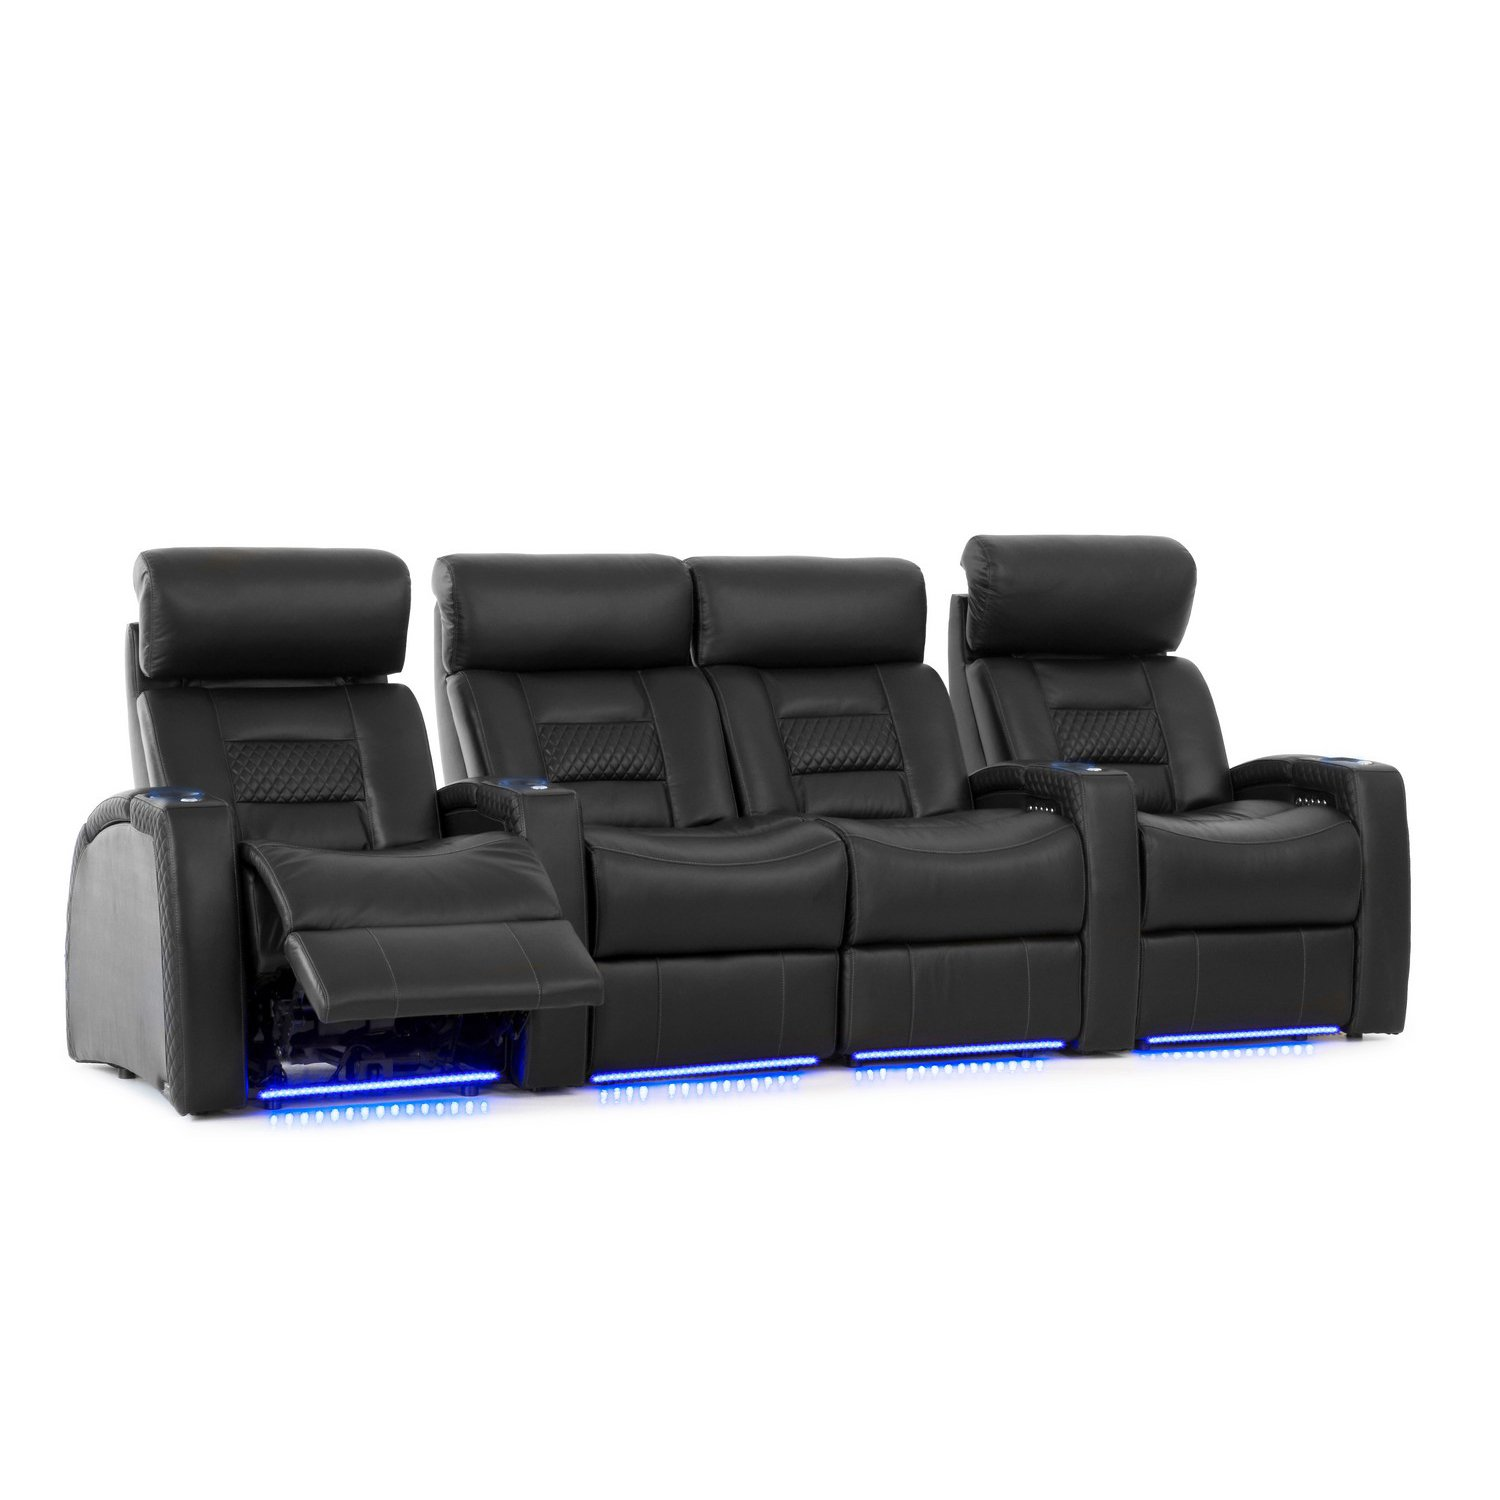 Octane Seating Flex HR Home Theater Seats - Black Top Grain Leather - Power Recline - Row of 4 with Center Loveseat by Octane Seating